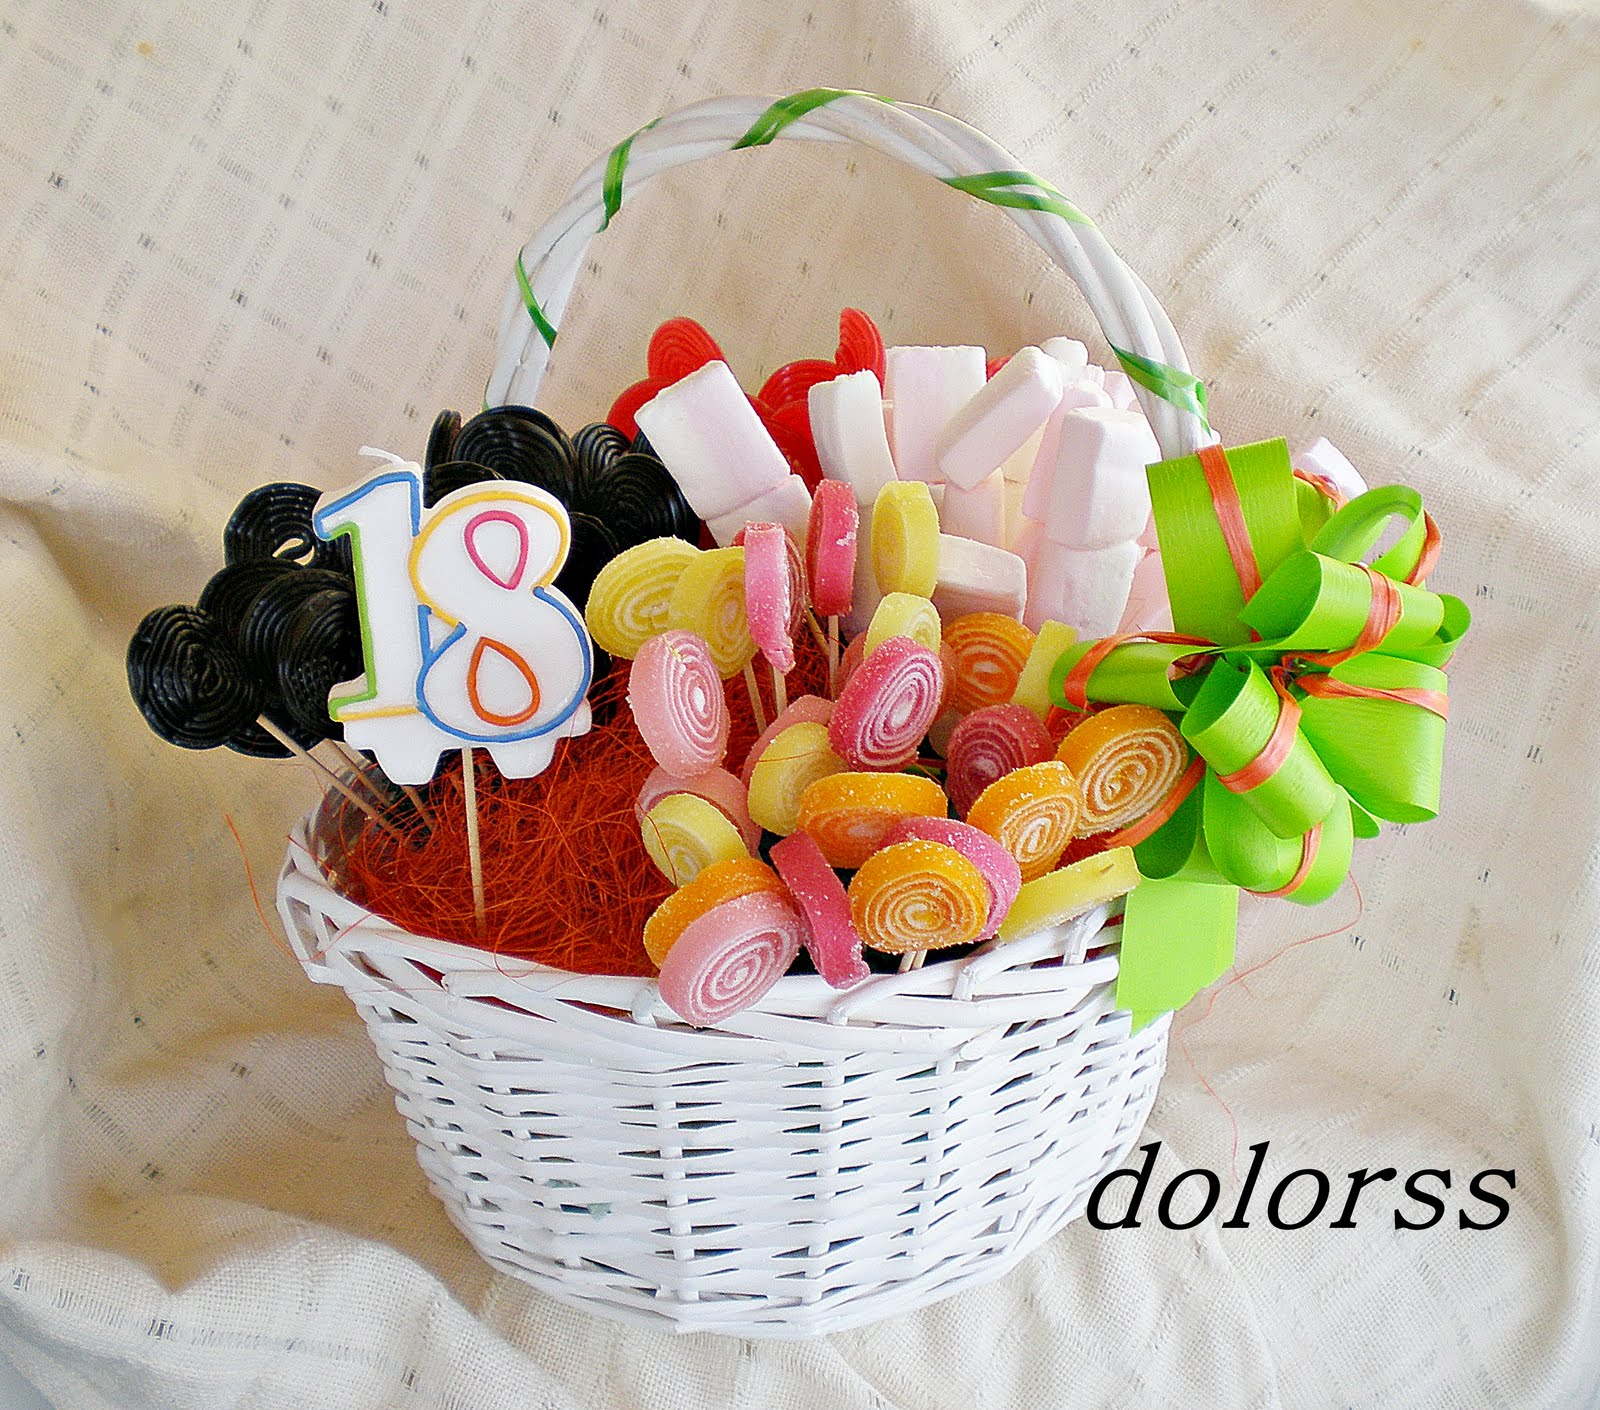 Blog de cuina de la dolorss cesta de chuches for Decoracion de cestas